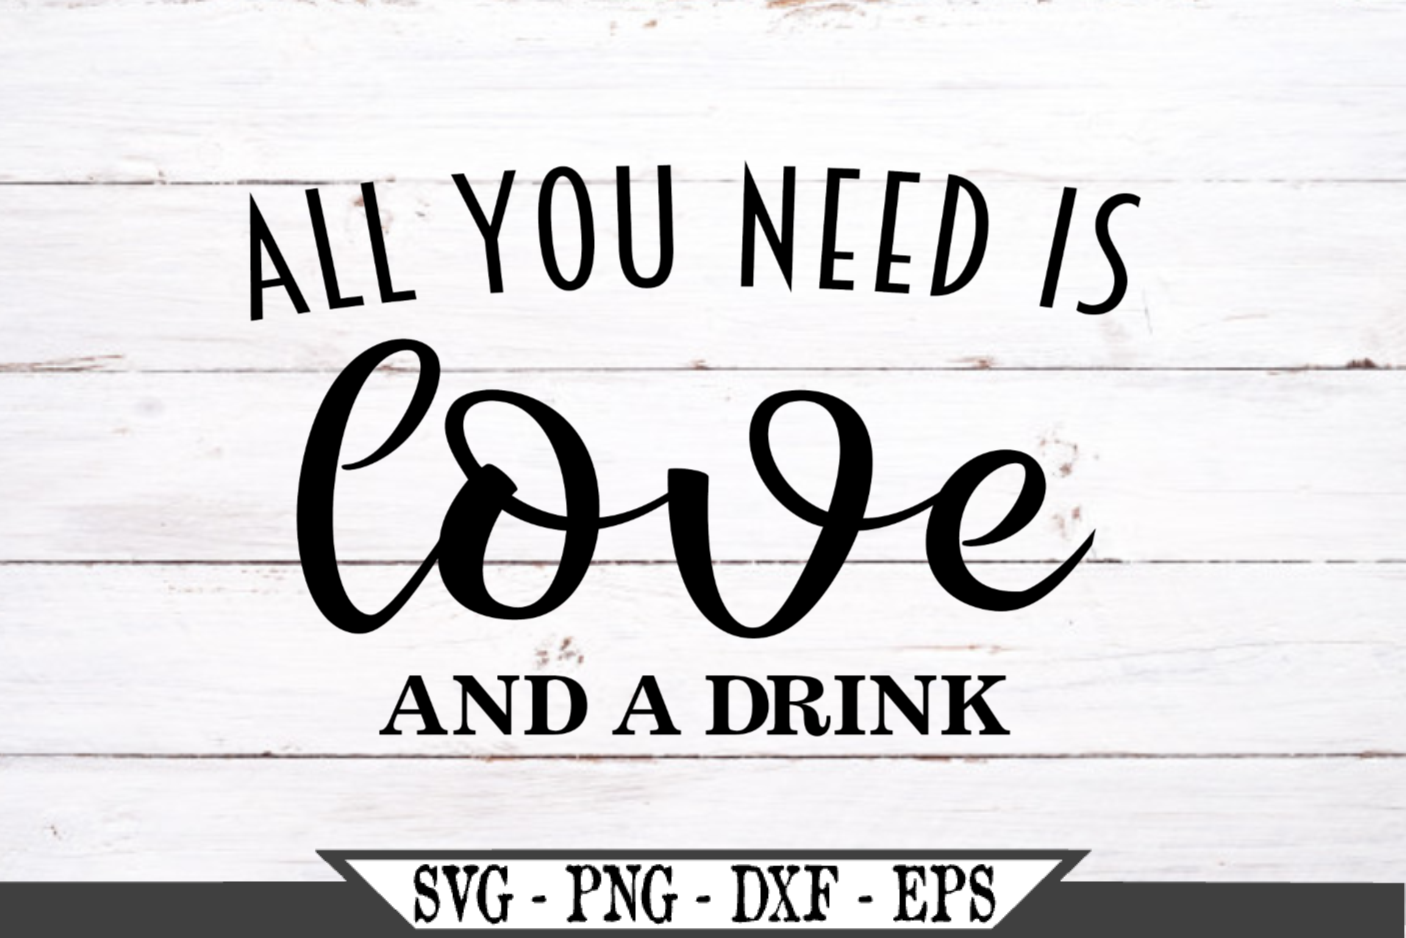 All You Need Is Love And A Drink SVG example image 2